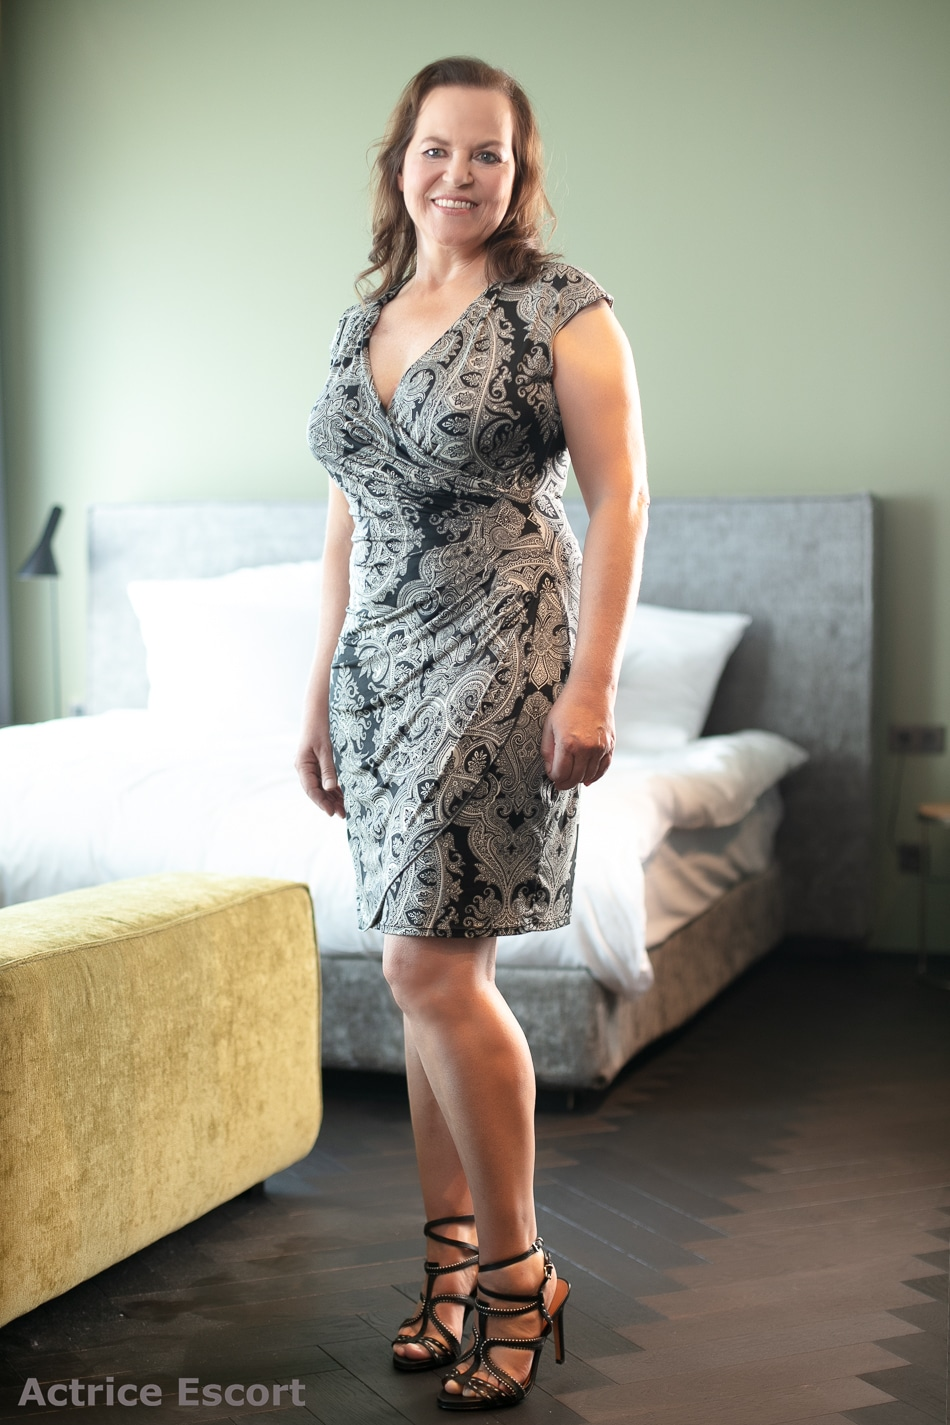 Bettina reife Frau Escortservice Duesseldorf(28)